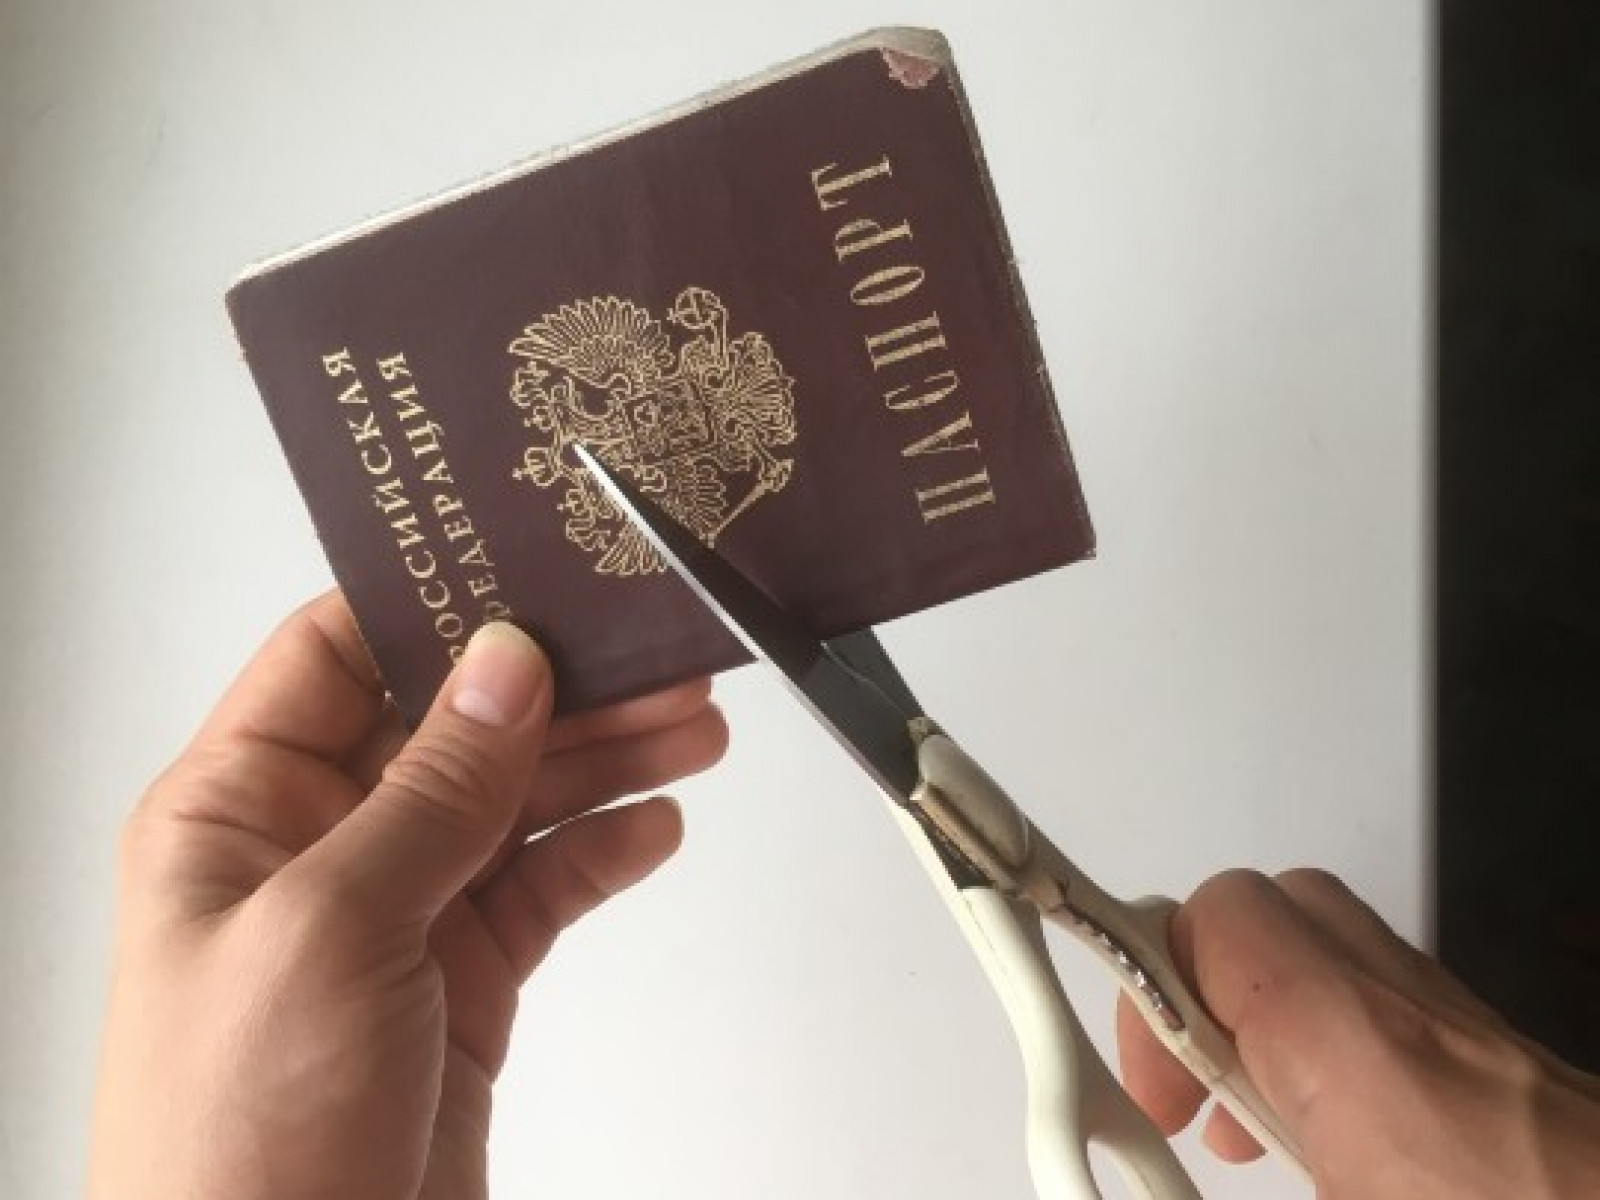 Russian passport being cut with scissors